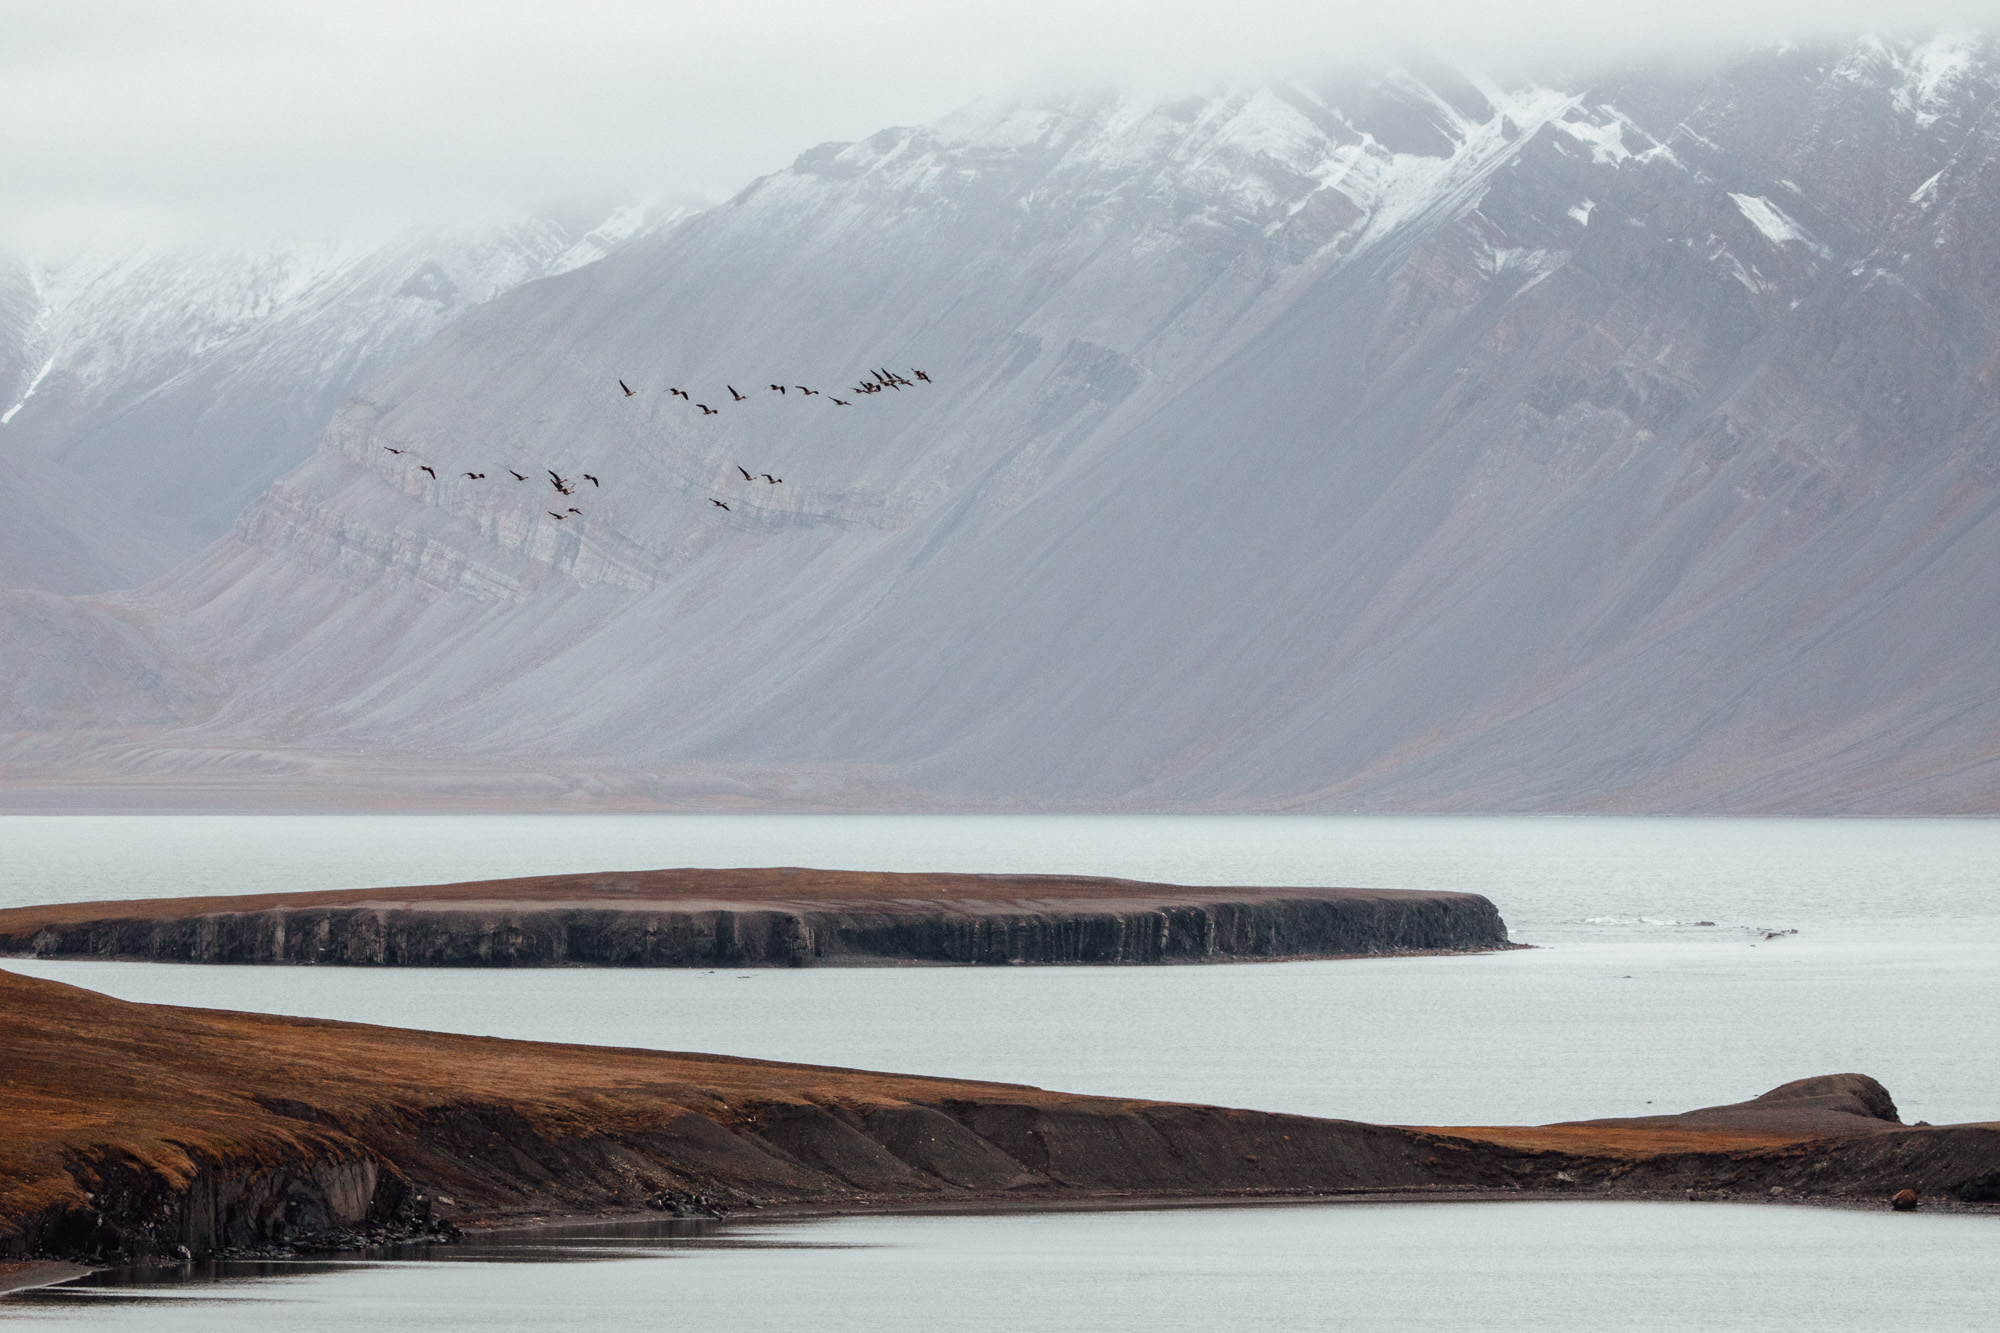 Birds and mountains in Svalbard, Spitsbergen, Norway